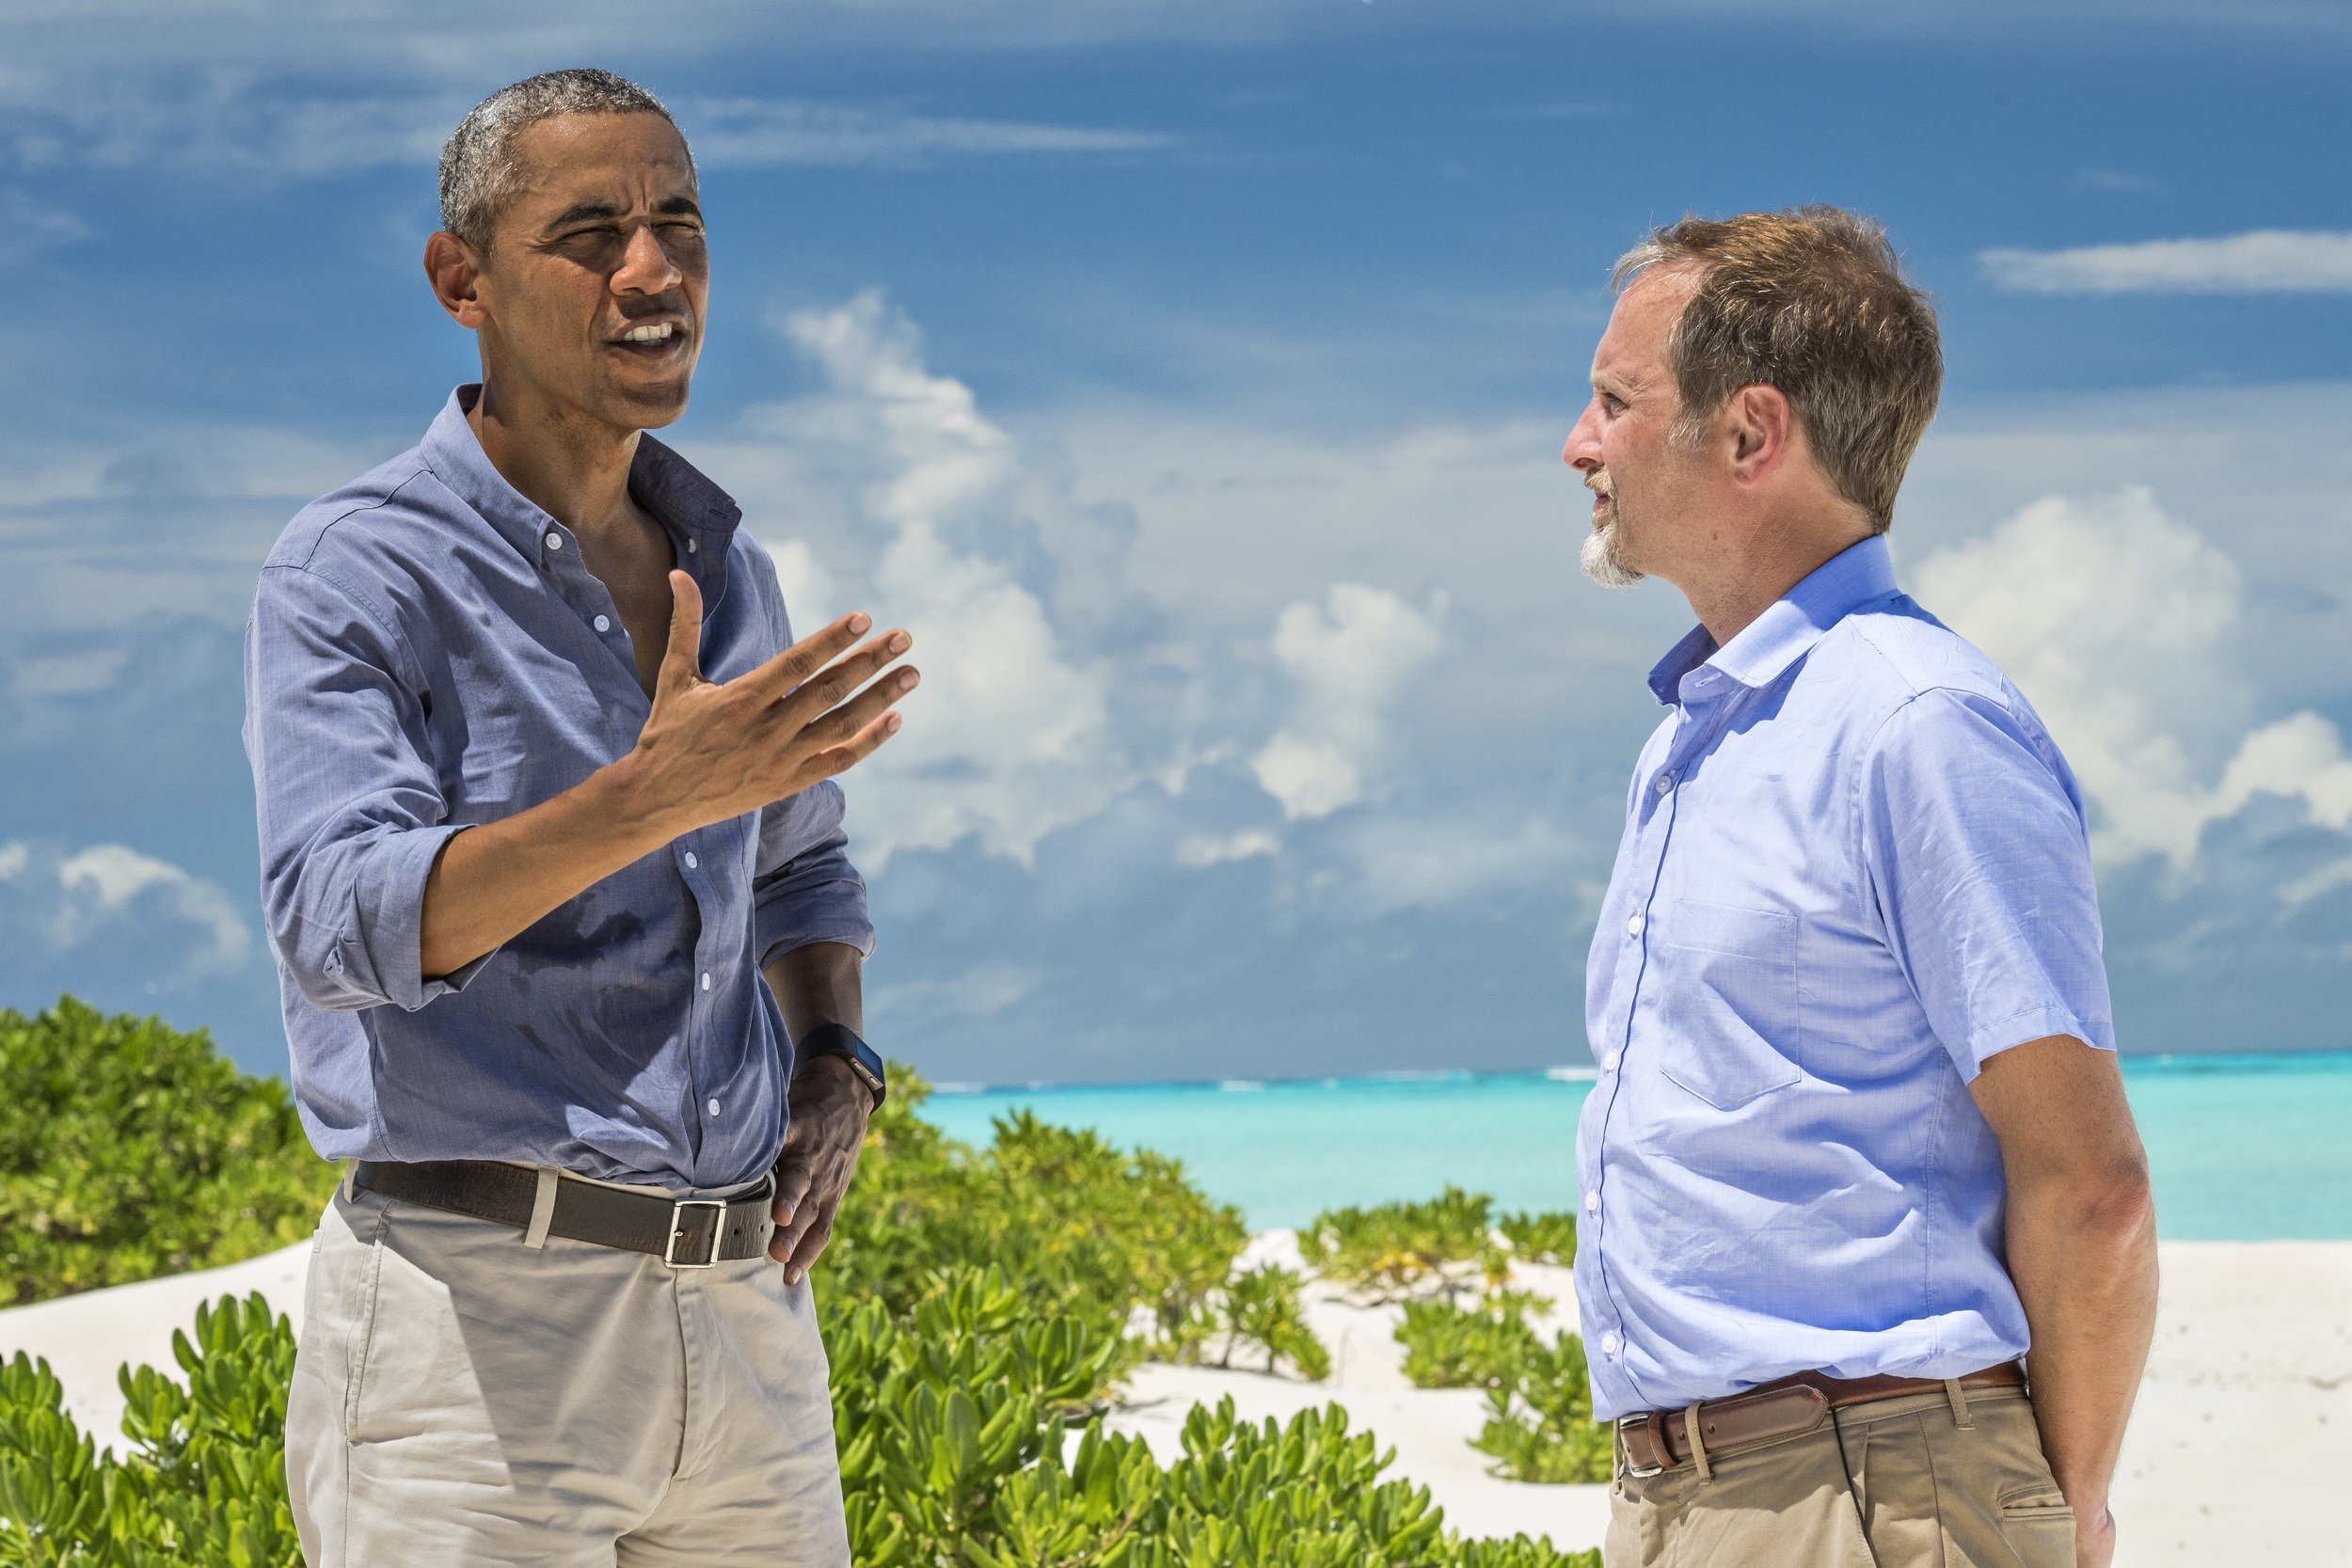 Welch interviewed Barack Obama on Midway Island in September 2016 shortly after the president expanded an existing marine reserve in the Pacific Ocean. (Photo by Brian Skerry, National Geographic)